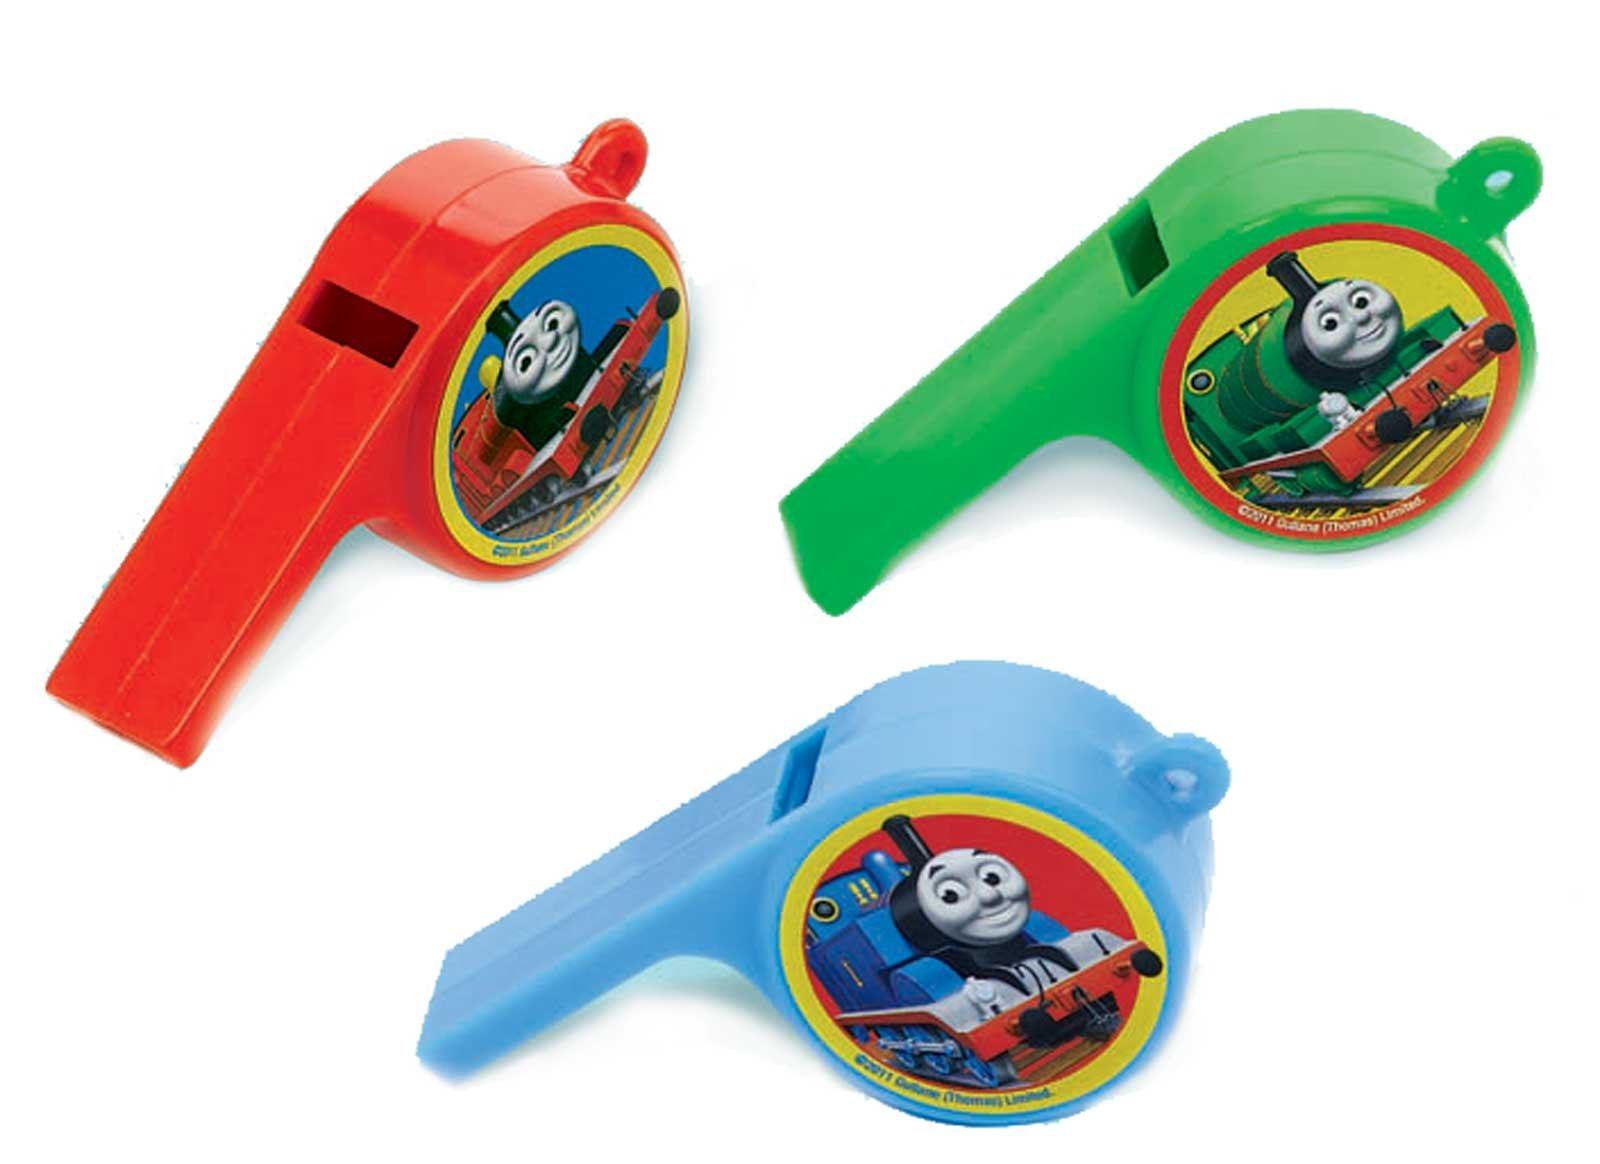 Amscan Fun Thomas The Tank Whistle Birthday Party Favours Toy and Prize Giveaway, 3'' x 1'' x 3/4'', Pack of 12.